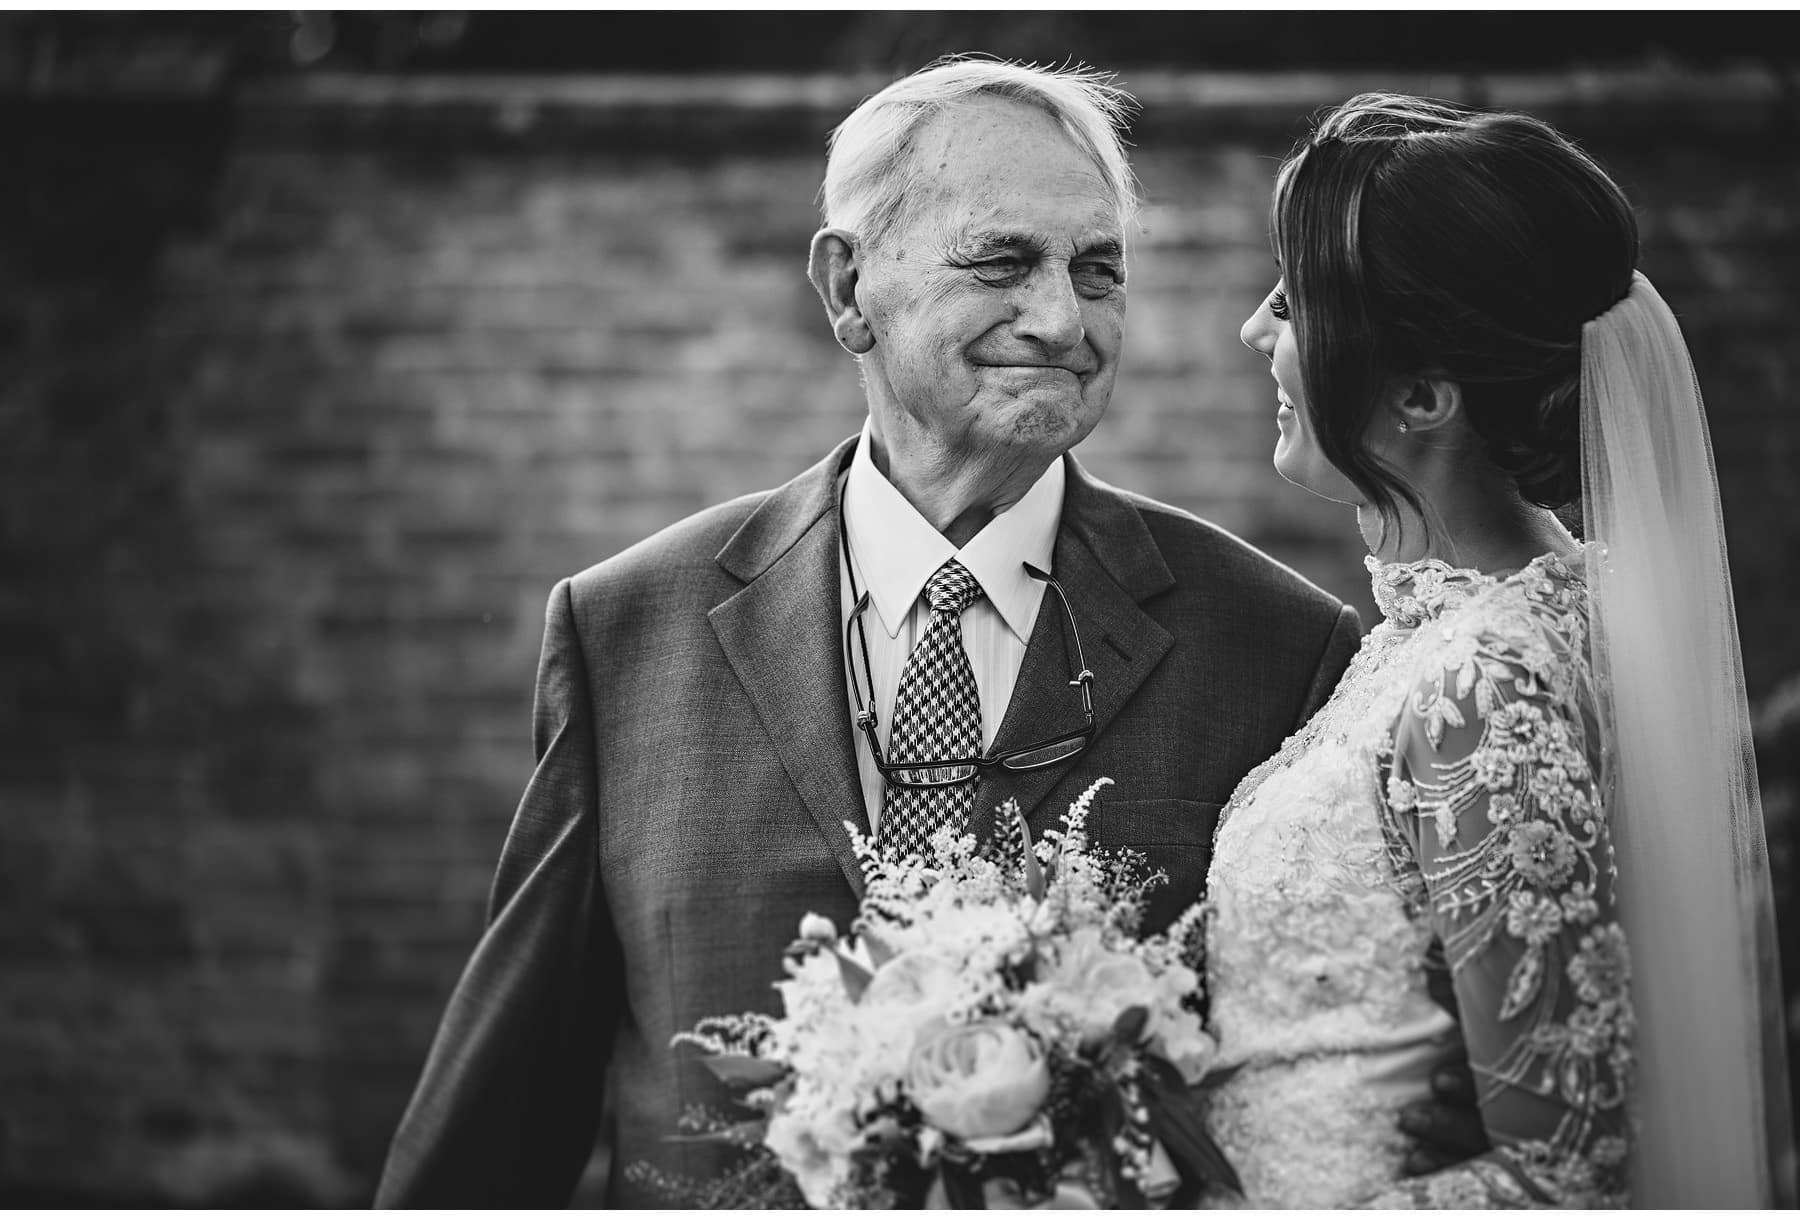 grandad looking lovingly at the bride